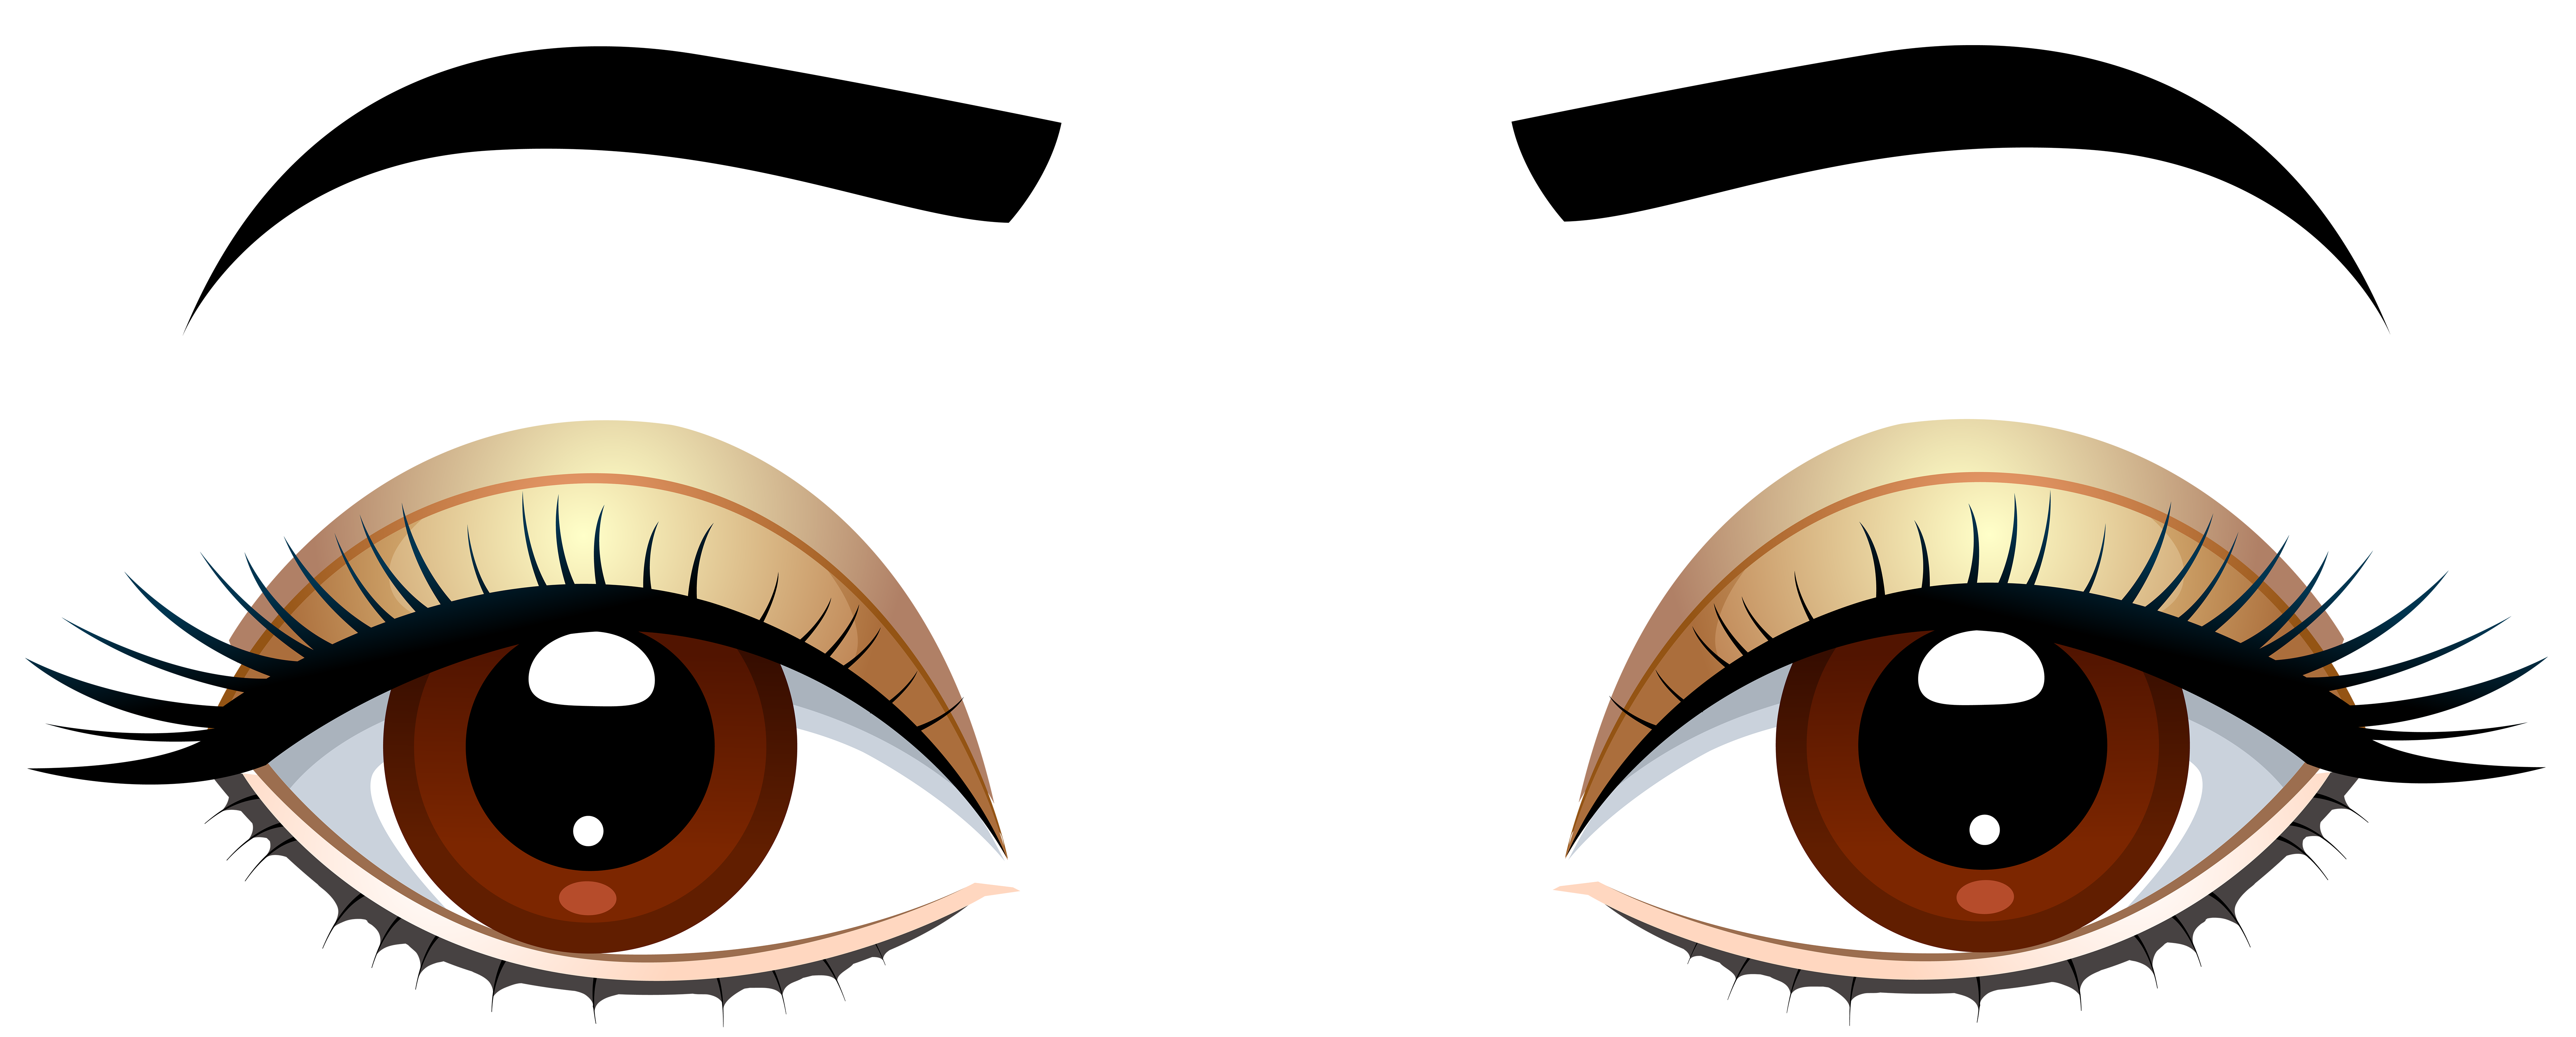 8000x3219 Brown Eyes With Eyebrows Png Clip Art